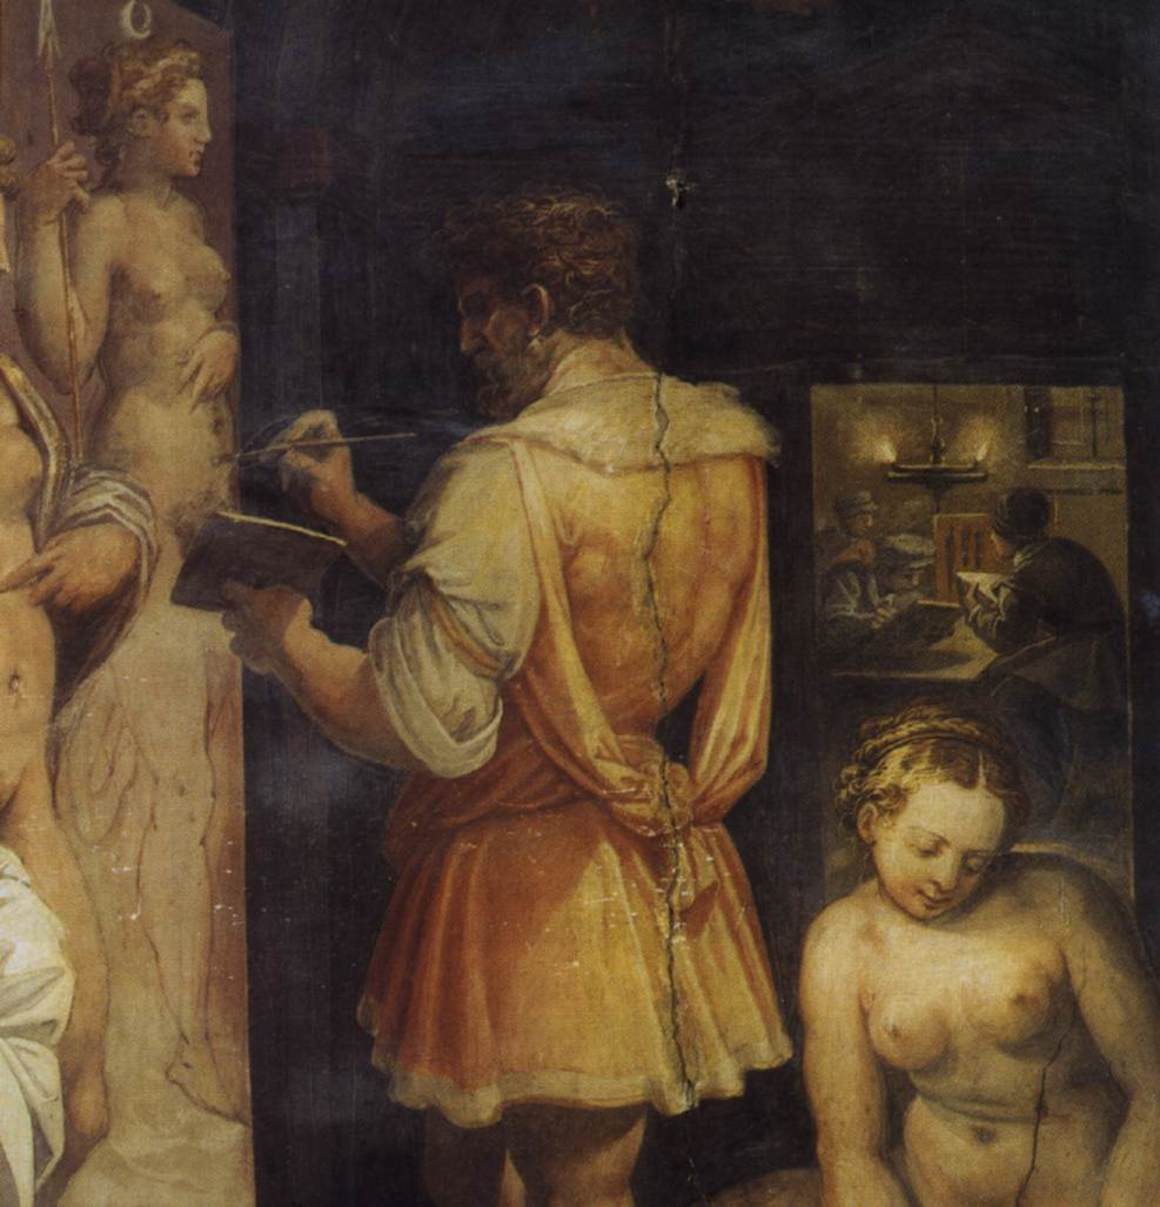 A detail from Giorgio Vasari's 1563 fresco, The Studio of the Painter – which depicts Zeuxis at work on his trompe l'oeuil images. Wikimedia Commons